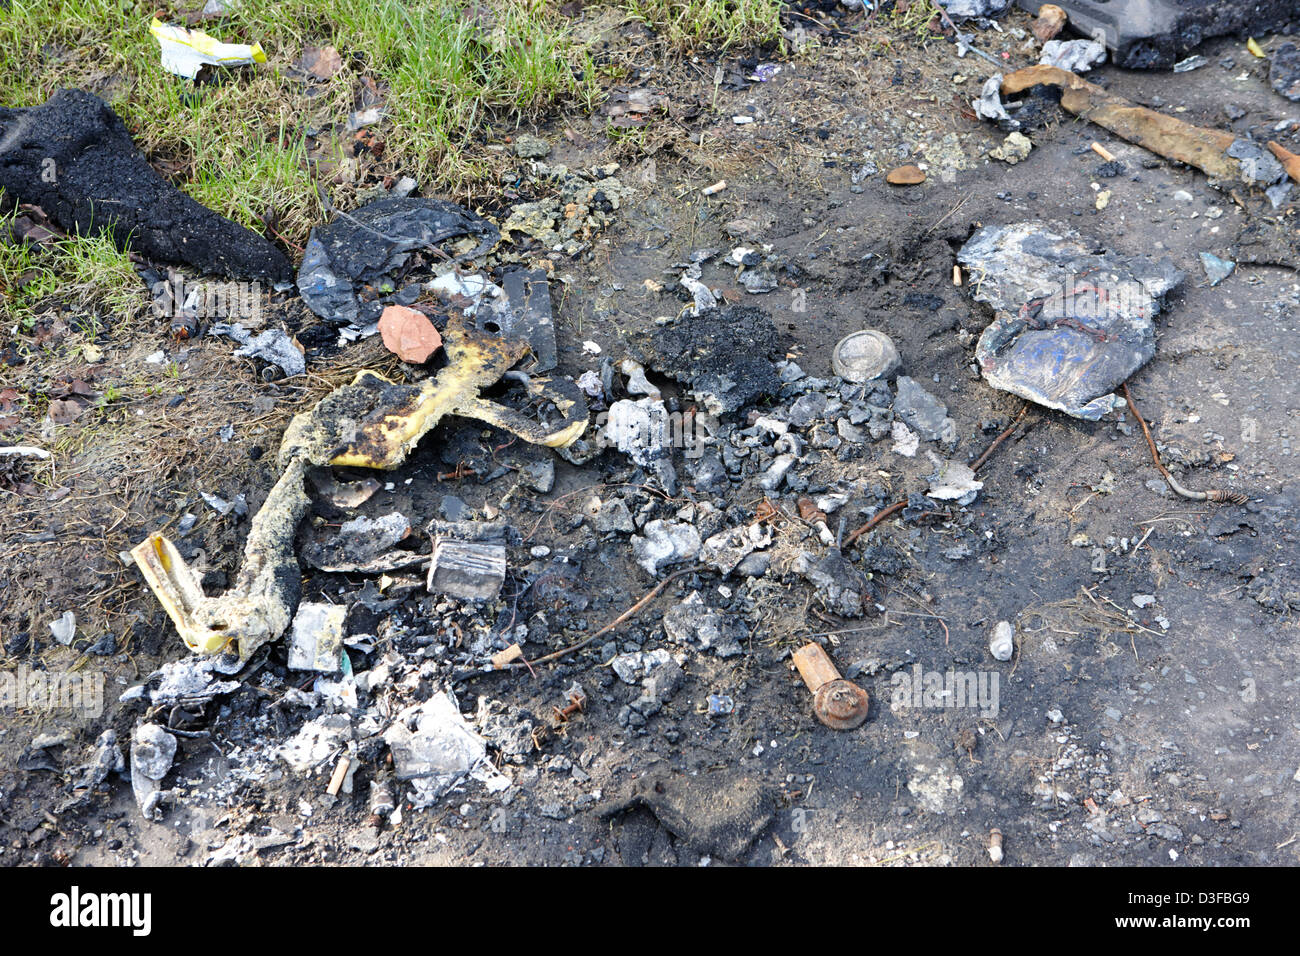 litter and rubbish burned in a public park in Belfast Northern Ireland UK - Stock Image